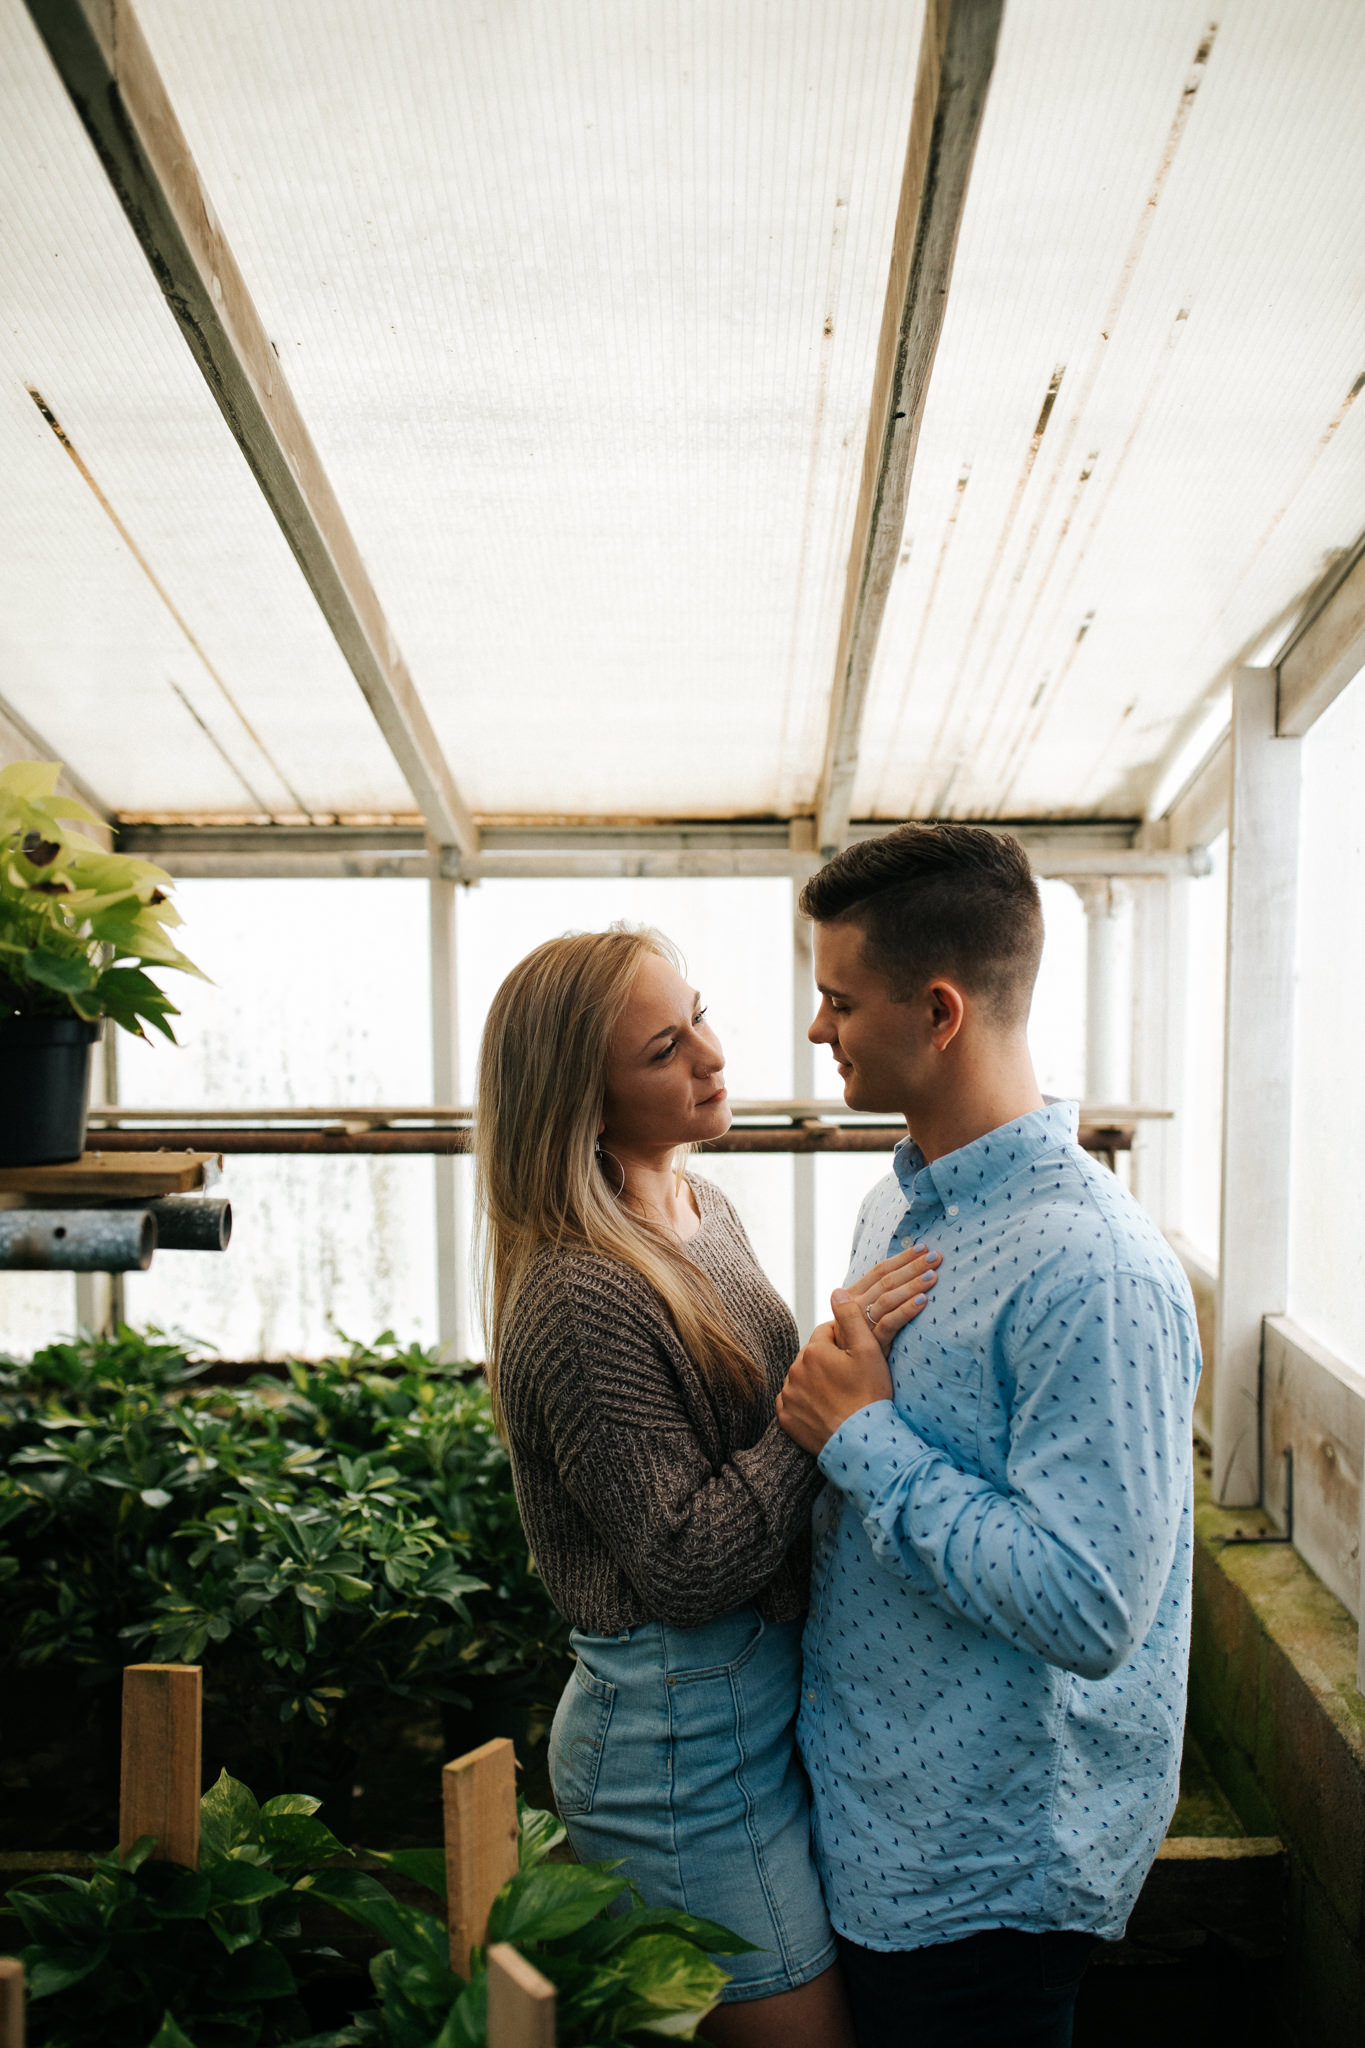 memphis-engagement-photographer-thewarmtharoundyou-greenhouse-engagement-pictures (46 of 118).jpg